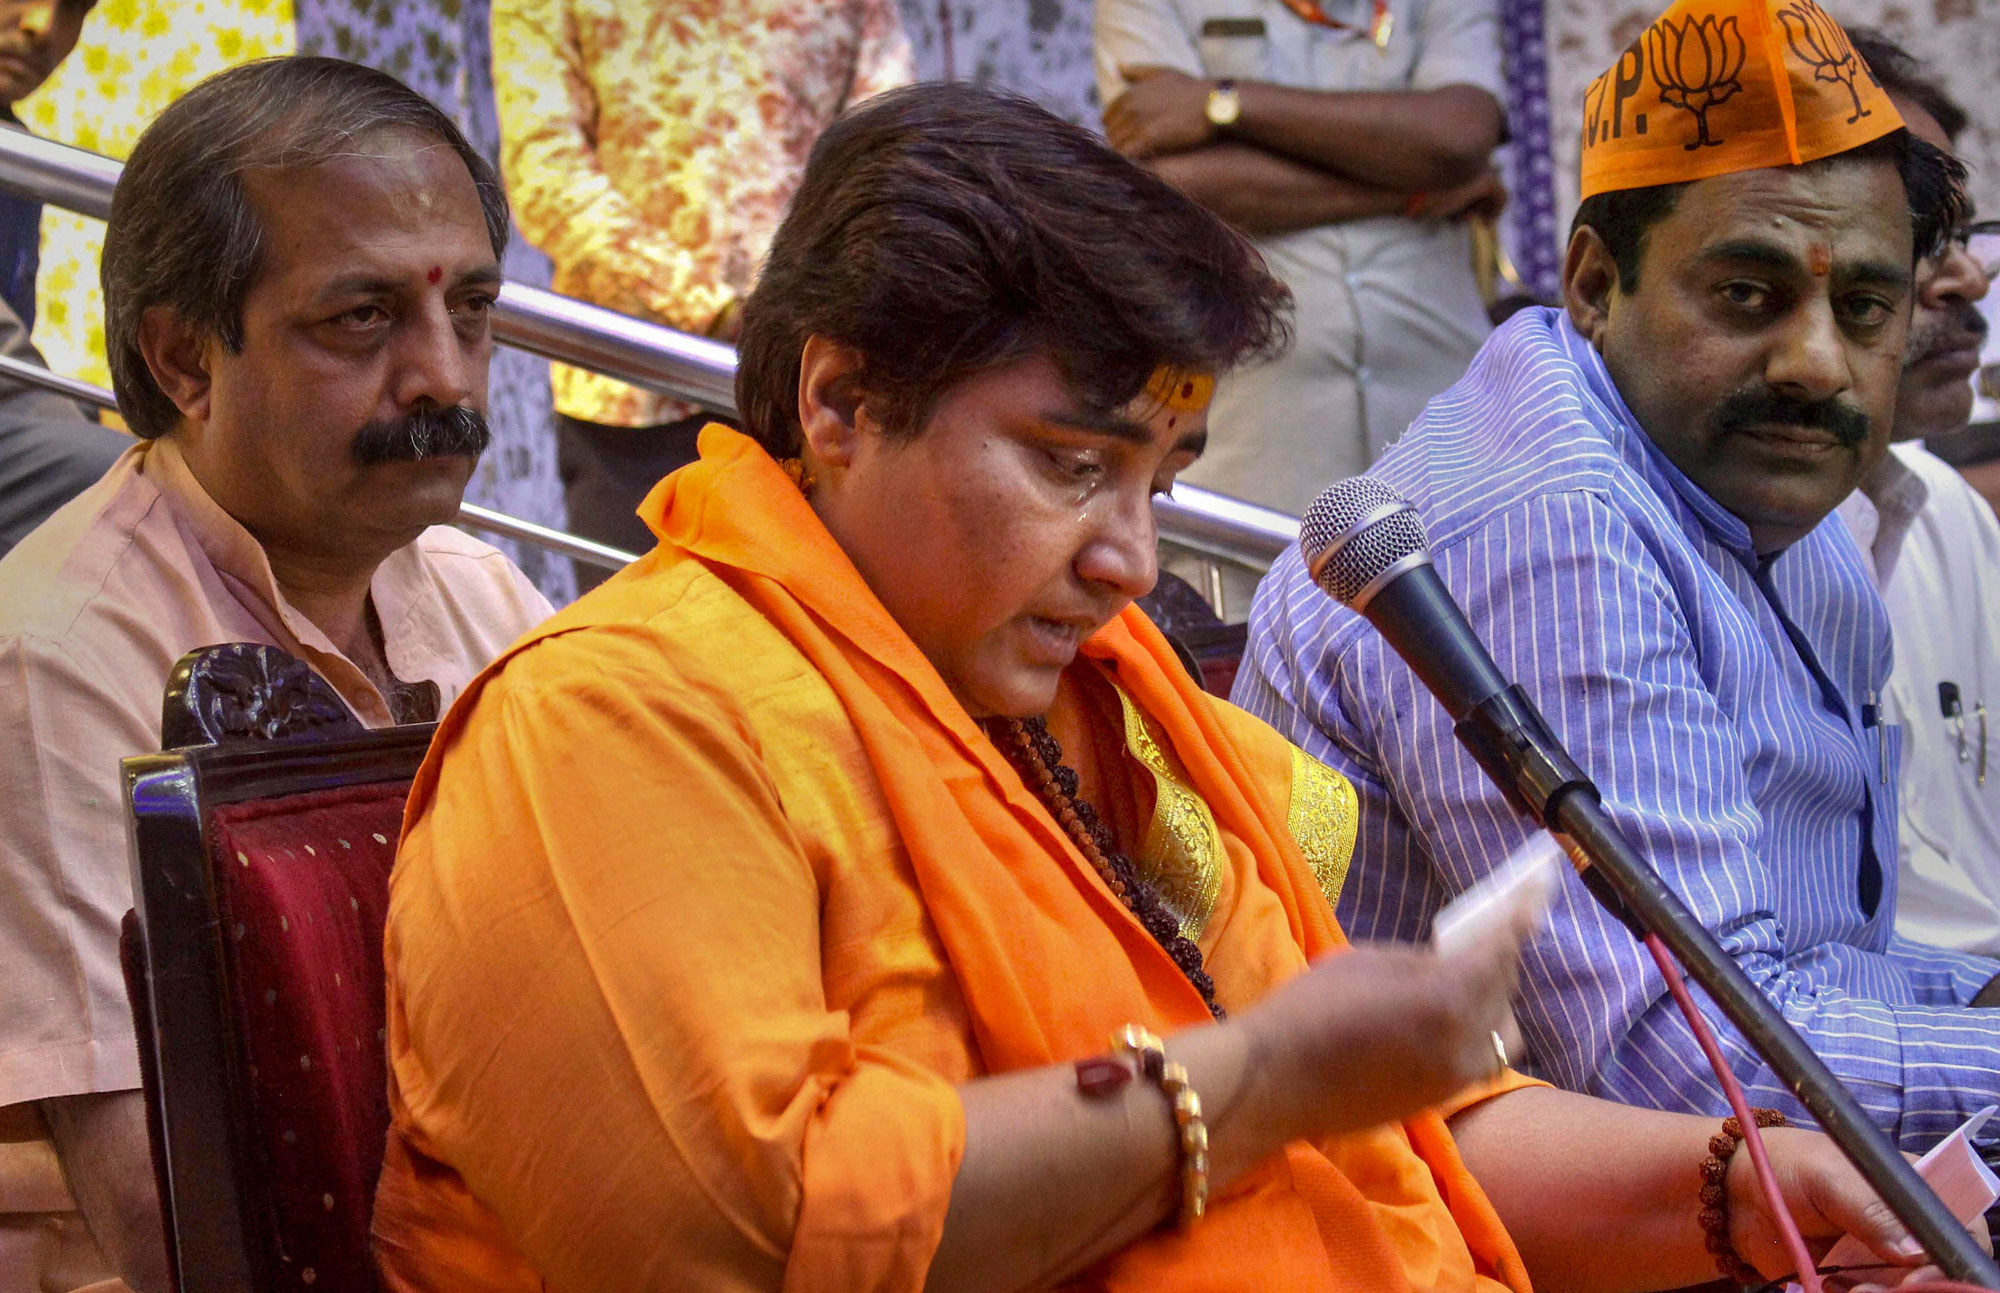 BJP candidate Sadhvi Pragya Singh Thakur reacts while addressing a party workers' meeting for Lok Sabha polls, in Bhopal on Thursday, April 18, 2019.